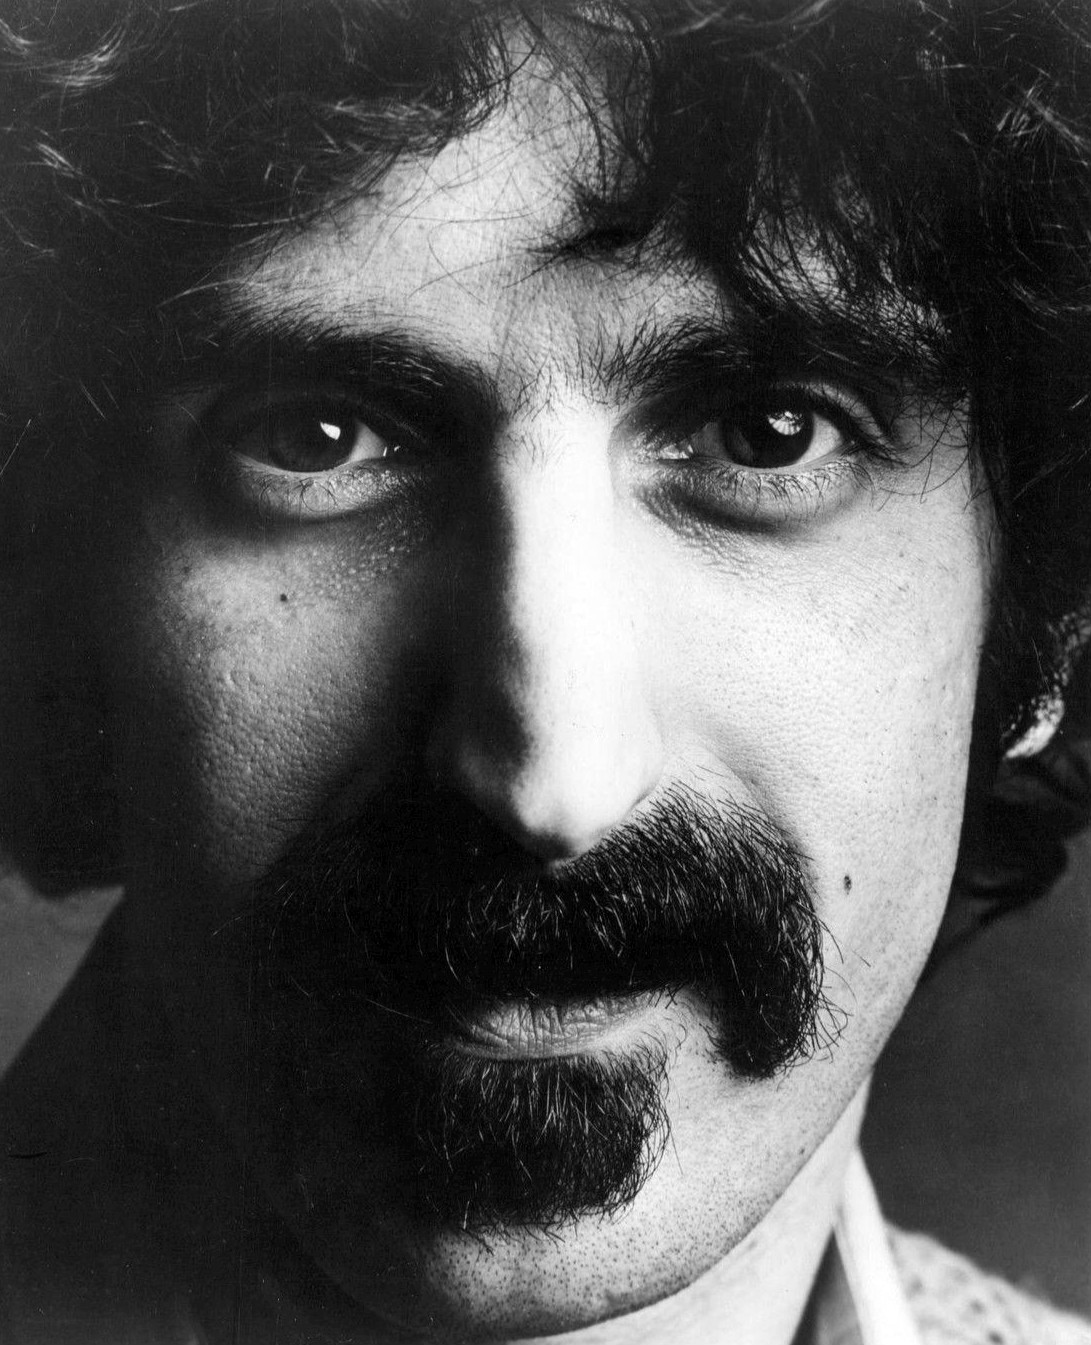 zappa beard - photo #40